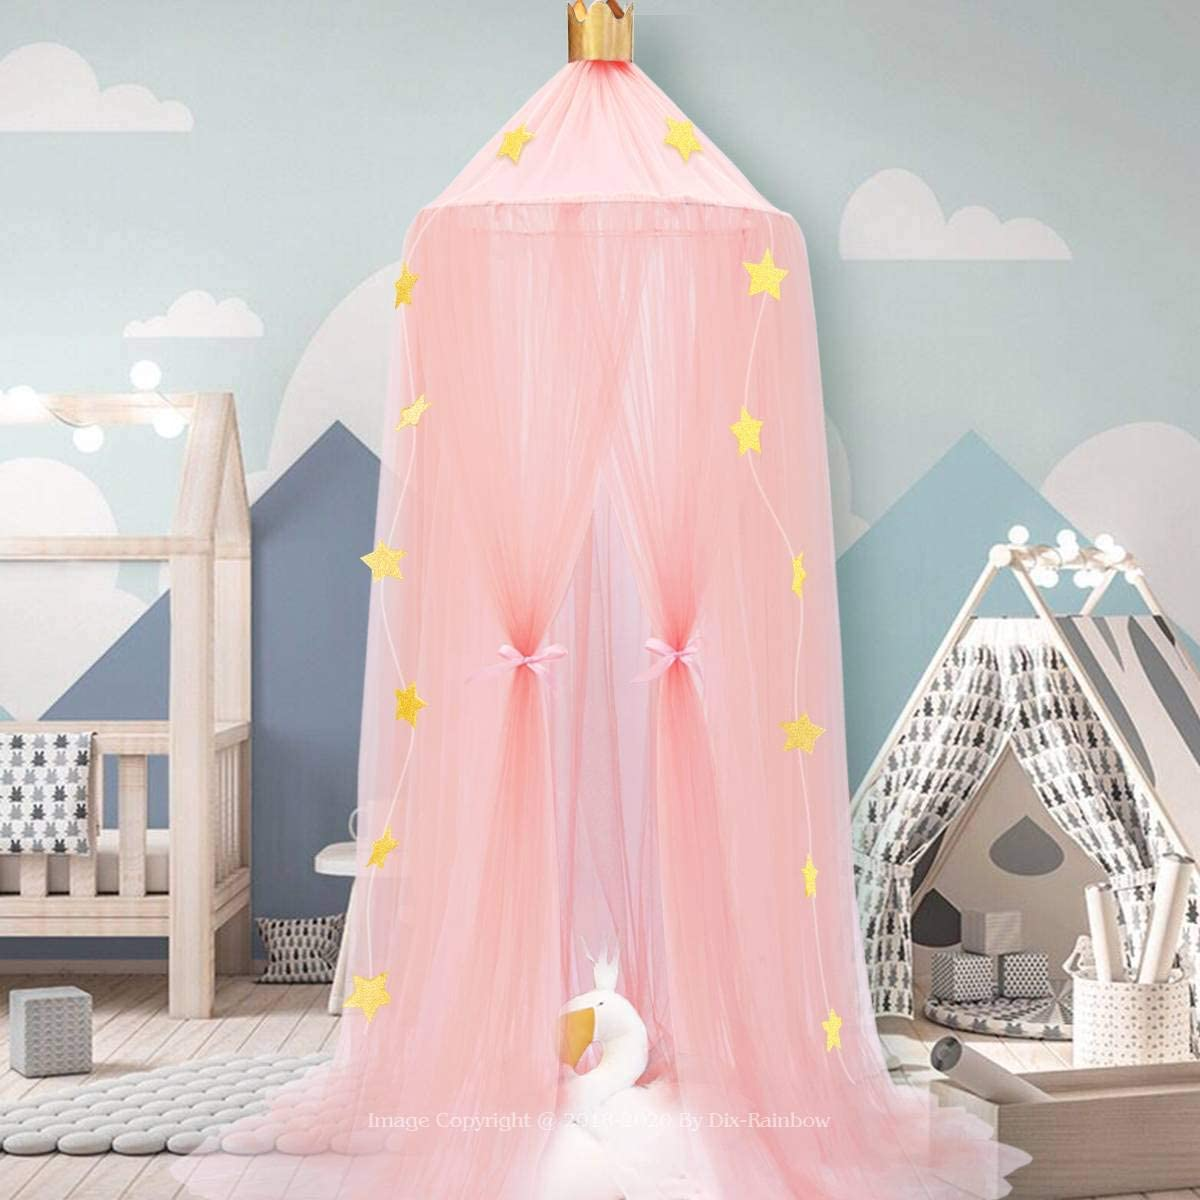 Pink Dix-Rainbow Bed Canopy Yarn Play Tent Bedding for Kids Playing Reading with Children Round Lace Dome Netting Curtains Baby Boys and Girls Games House